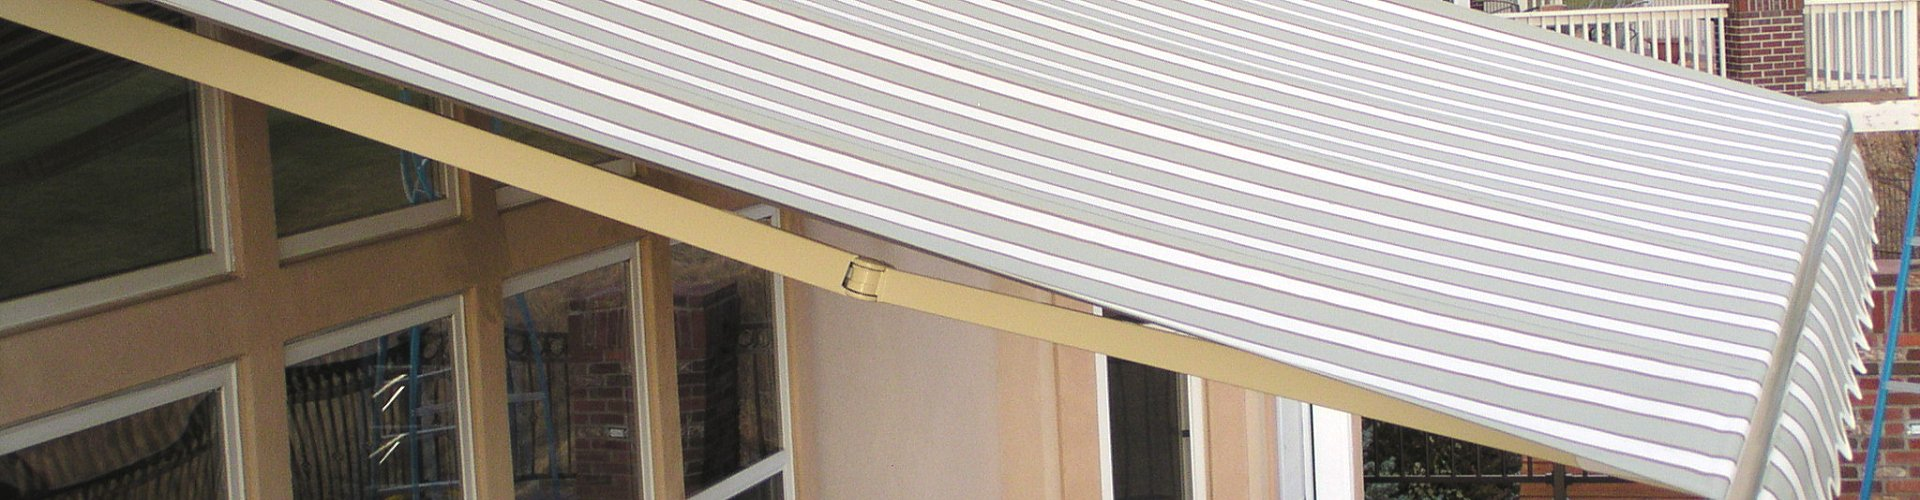 Awning Cleaning SunSaver Awnings Colorado Awnings